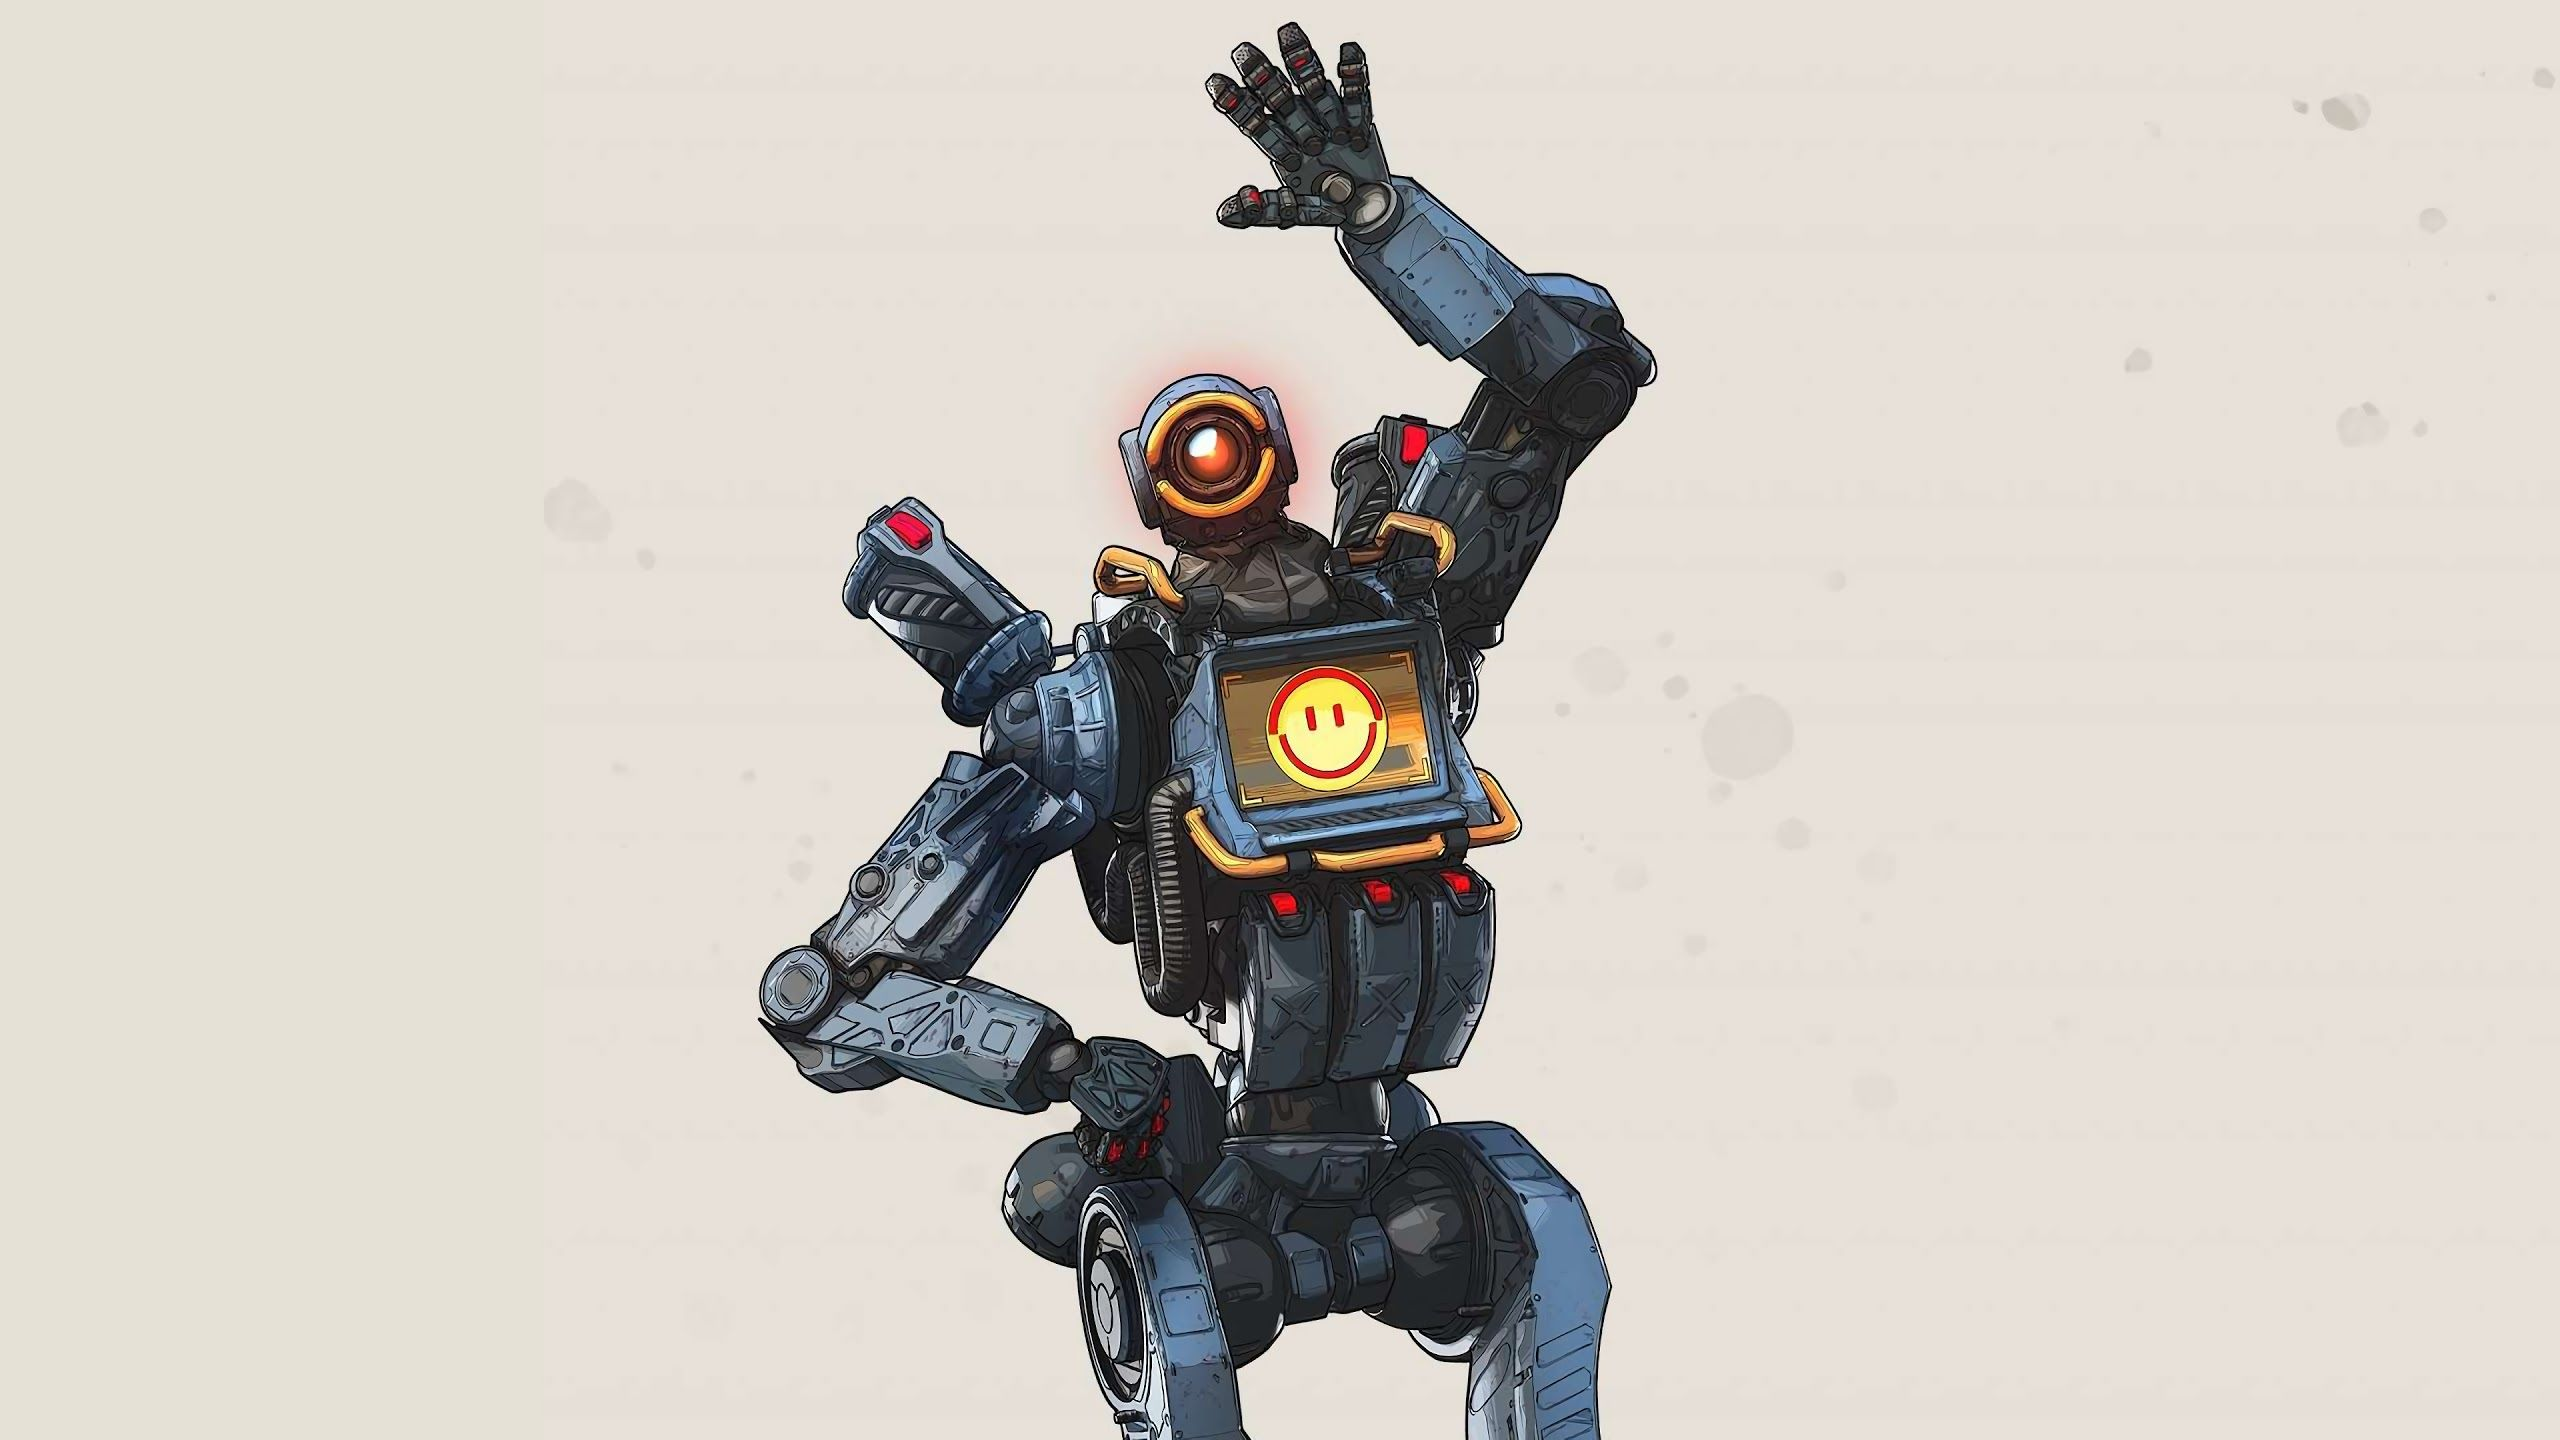 Get an exclusive Apex Legends skin with Twitch Prime right